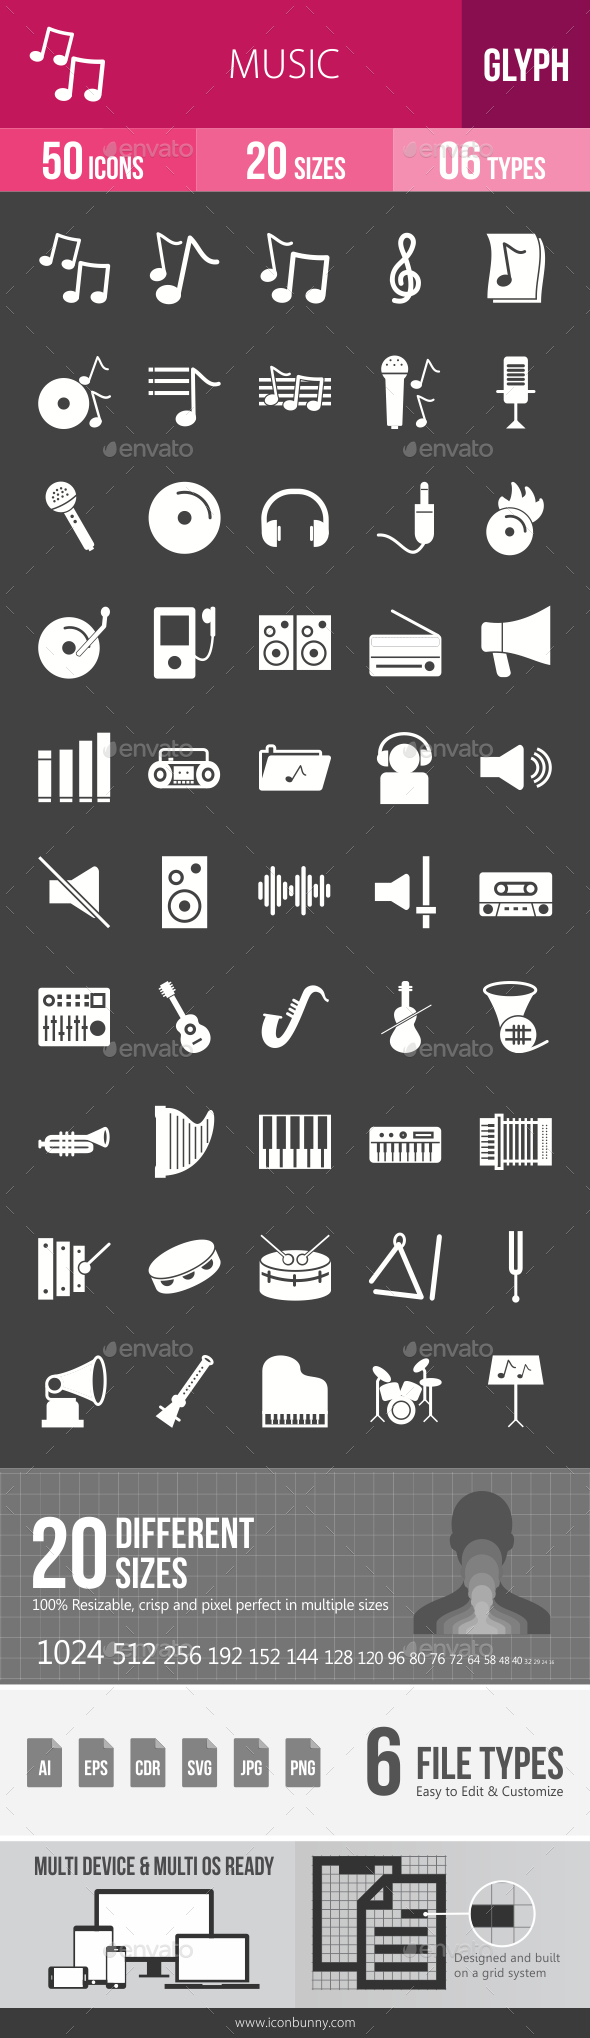 Music Glyph Inverted Icons - Icons